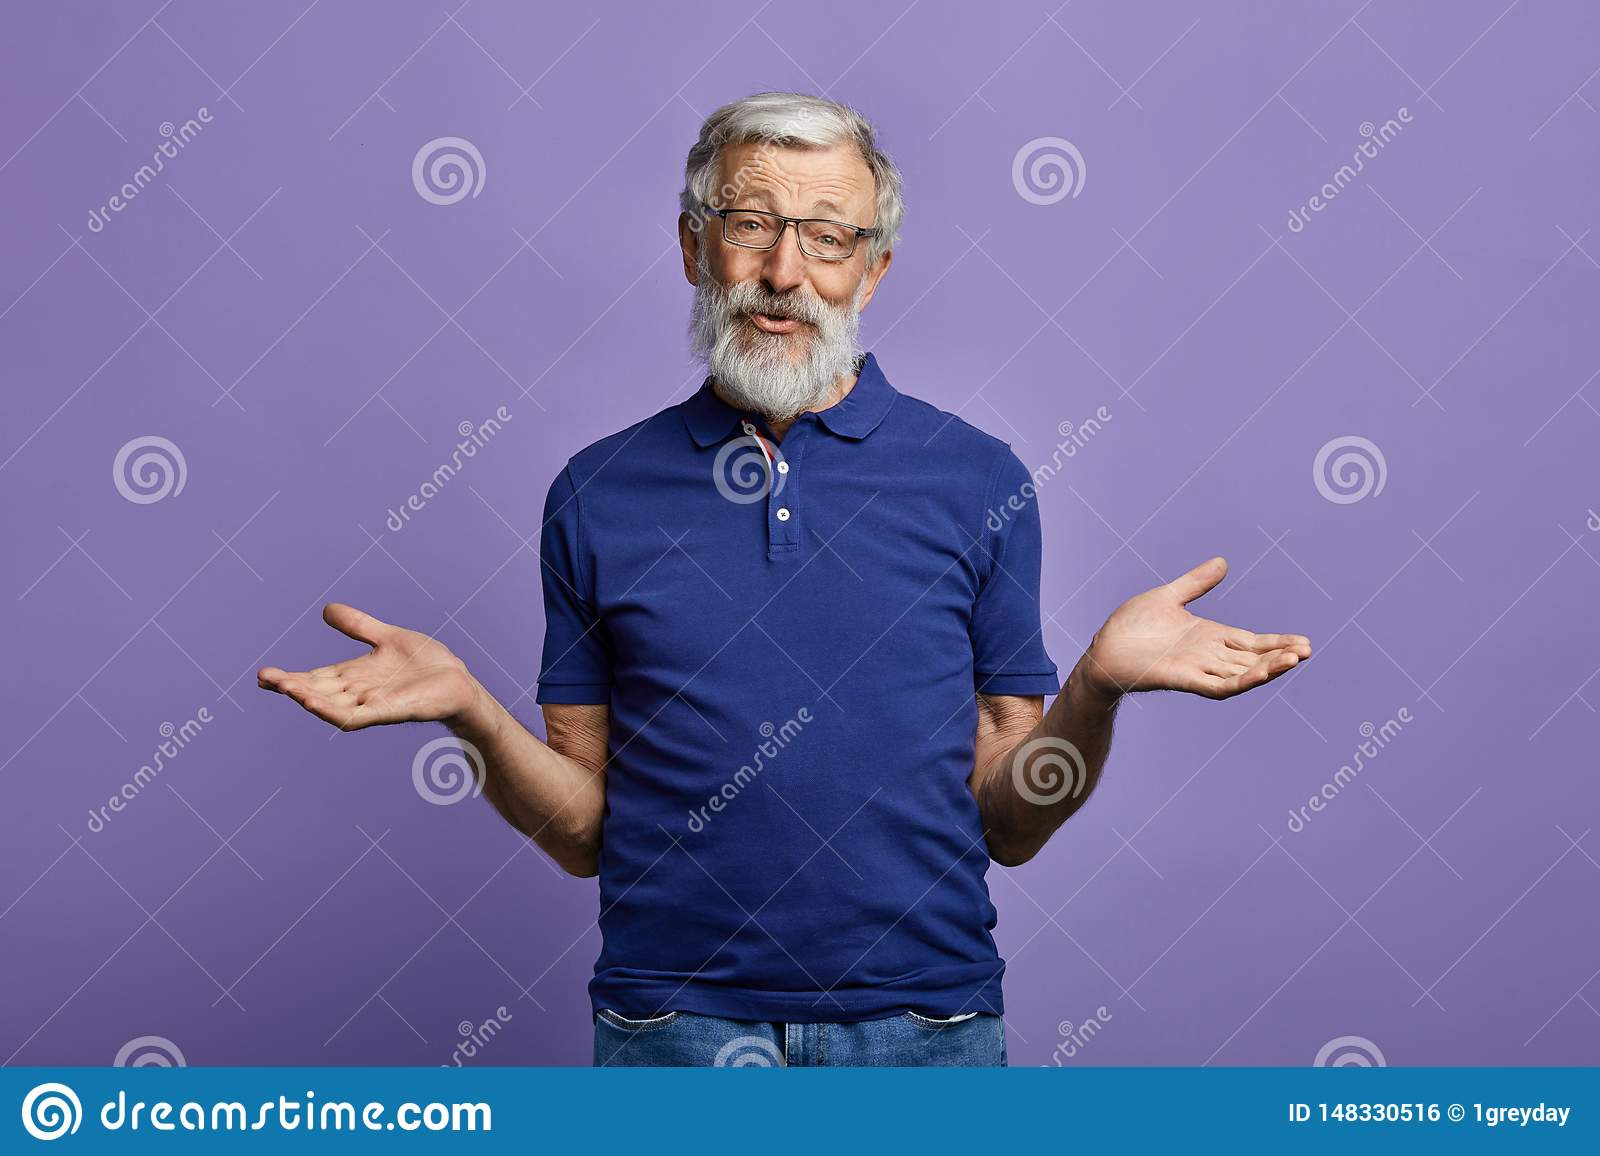 Clueless old man shrugging his shoulders